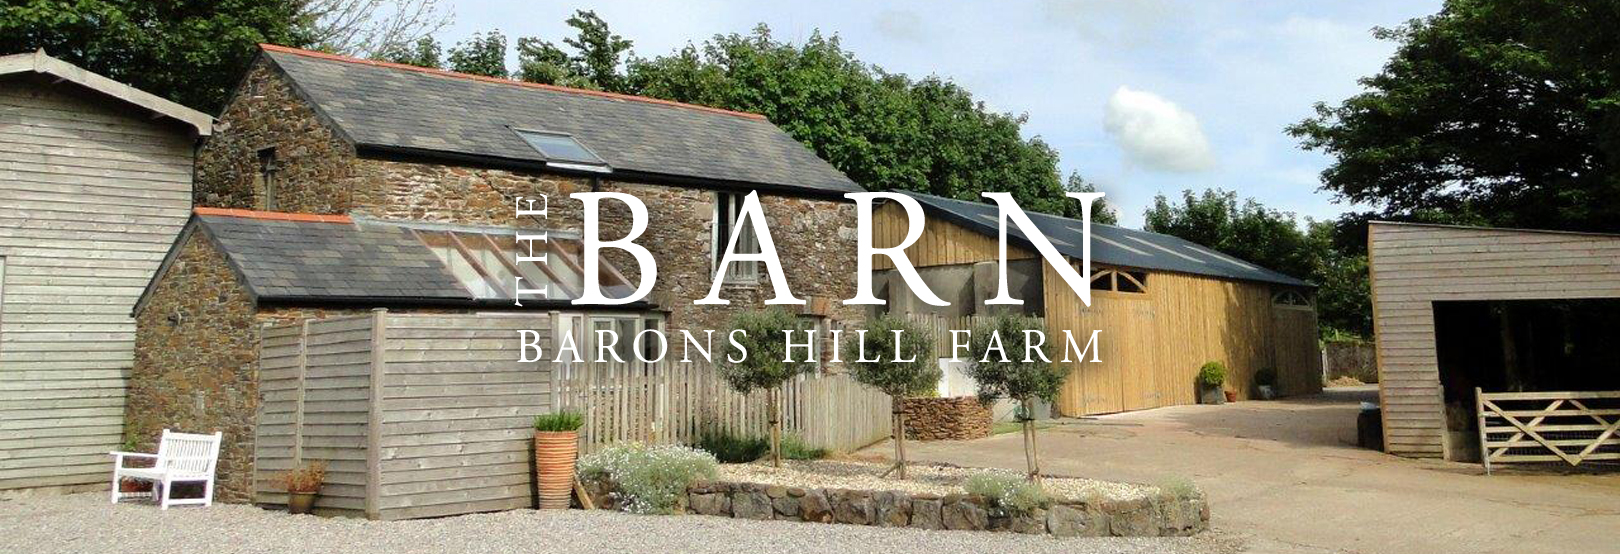 the-barn-barons-hill